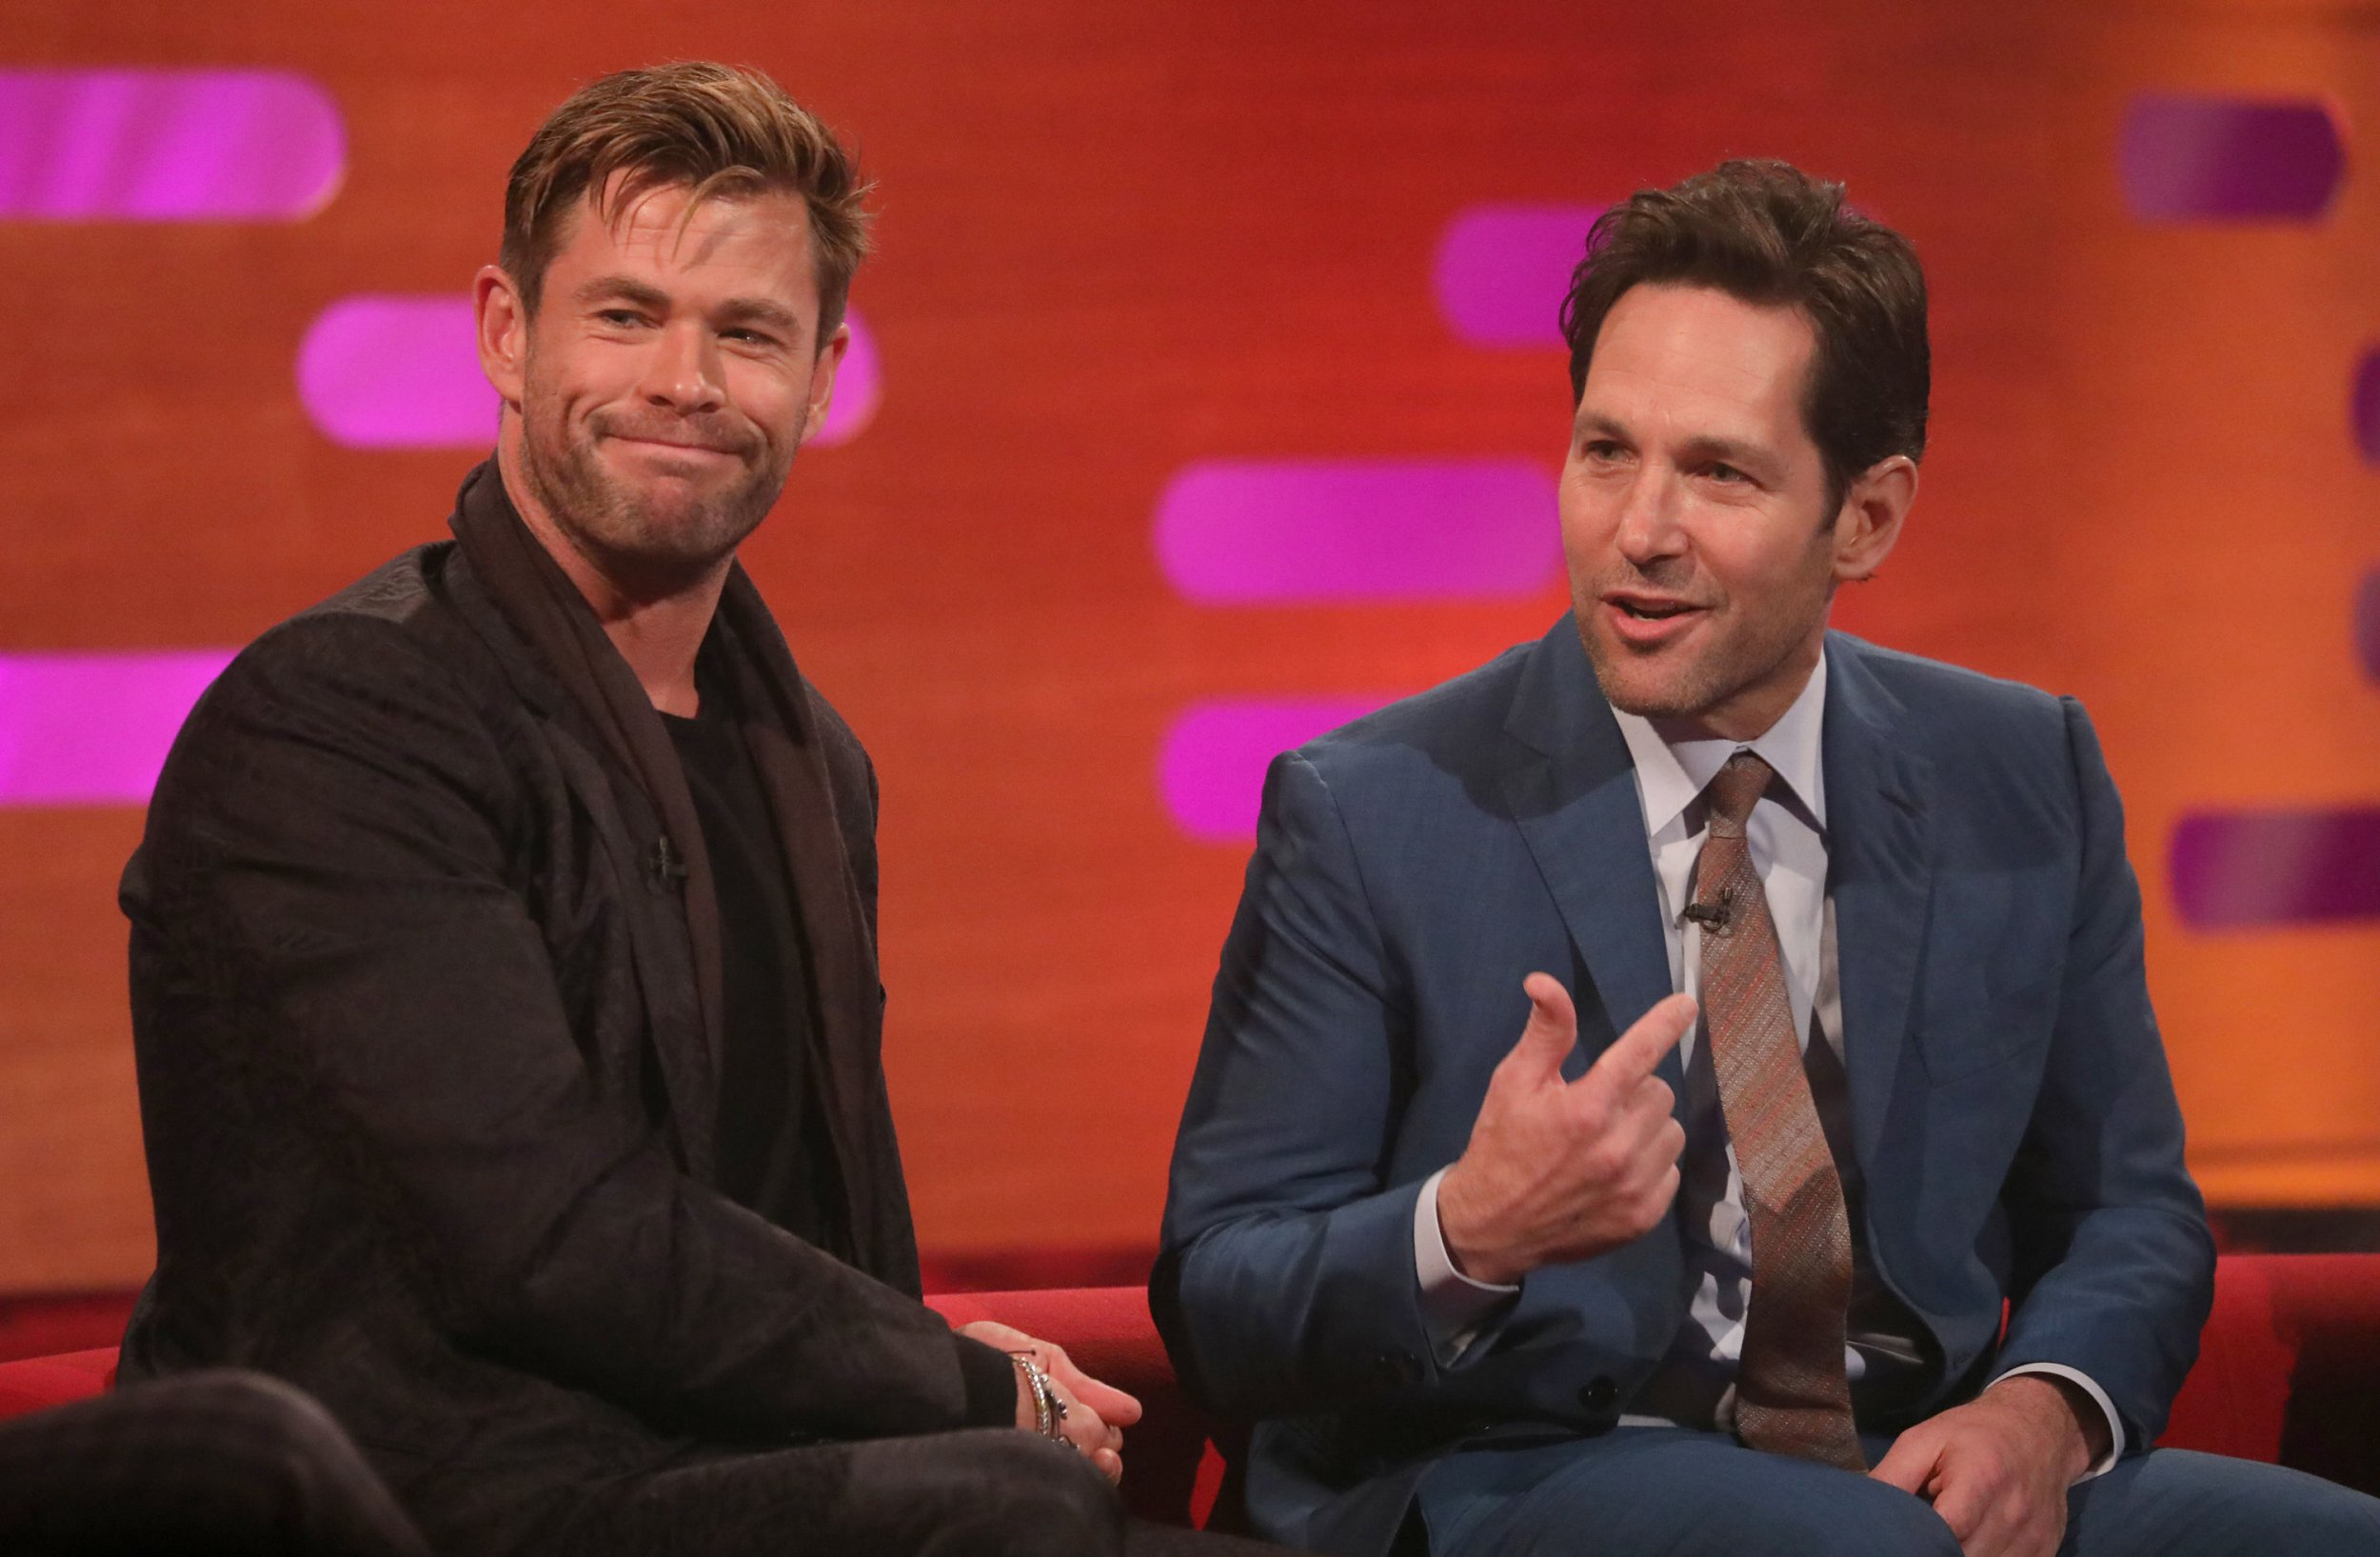 Chris Hemsworth (left) and Paul Rudd during the filming for the Graham Norton Show at BBC Studioworks 6 Television Centre, Wood Lane, London, to be aired on BBC One on Friday evening. PRESS ASSOCIATION Photo. Picture date: Thursday April 11, 2019. Photo credit should read: PA Images on behalf of So TV